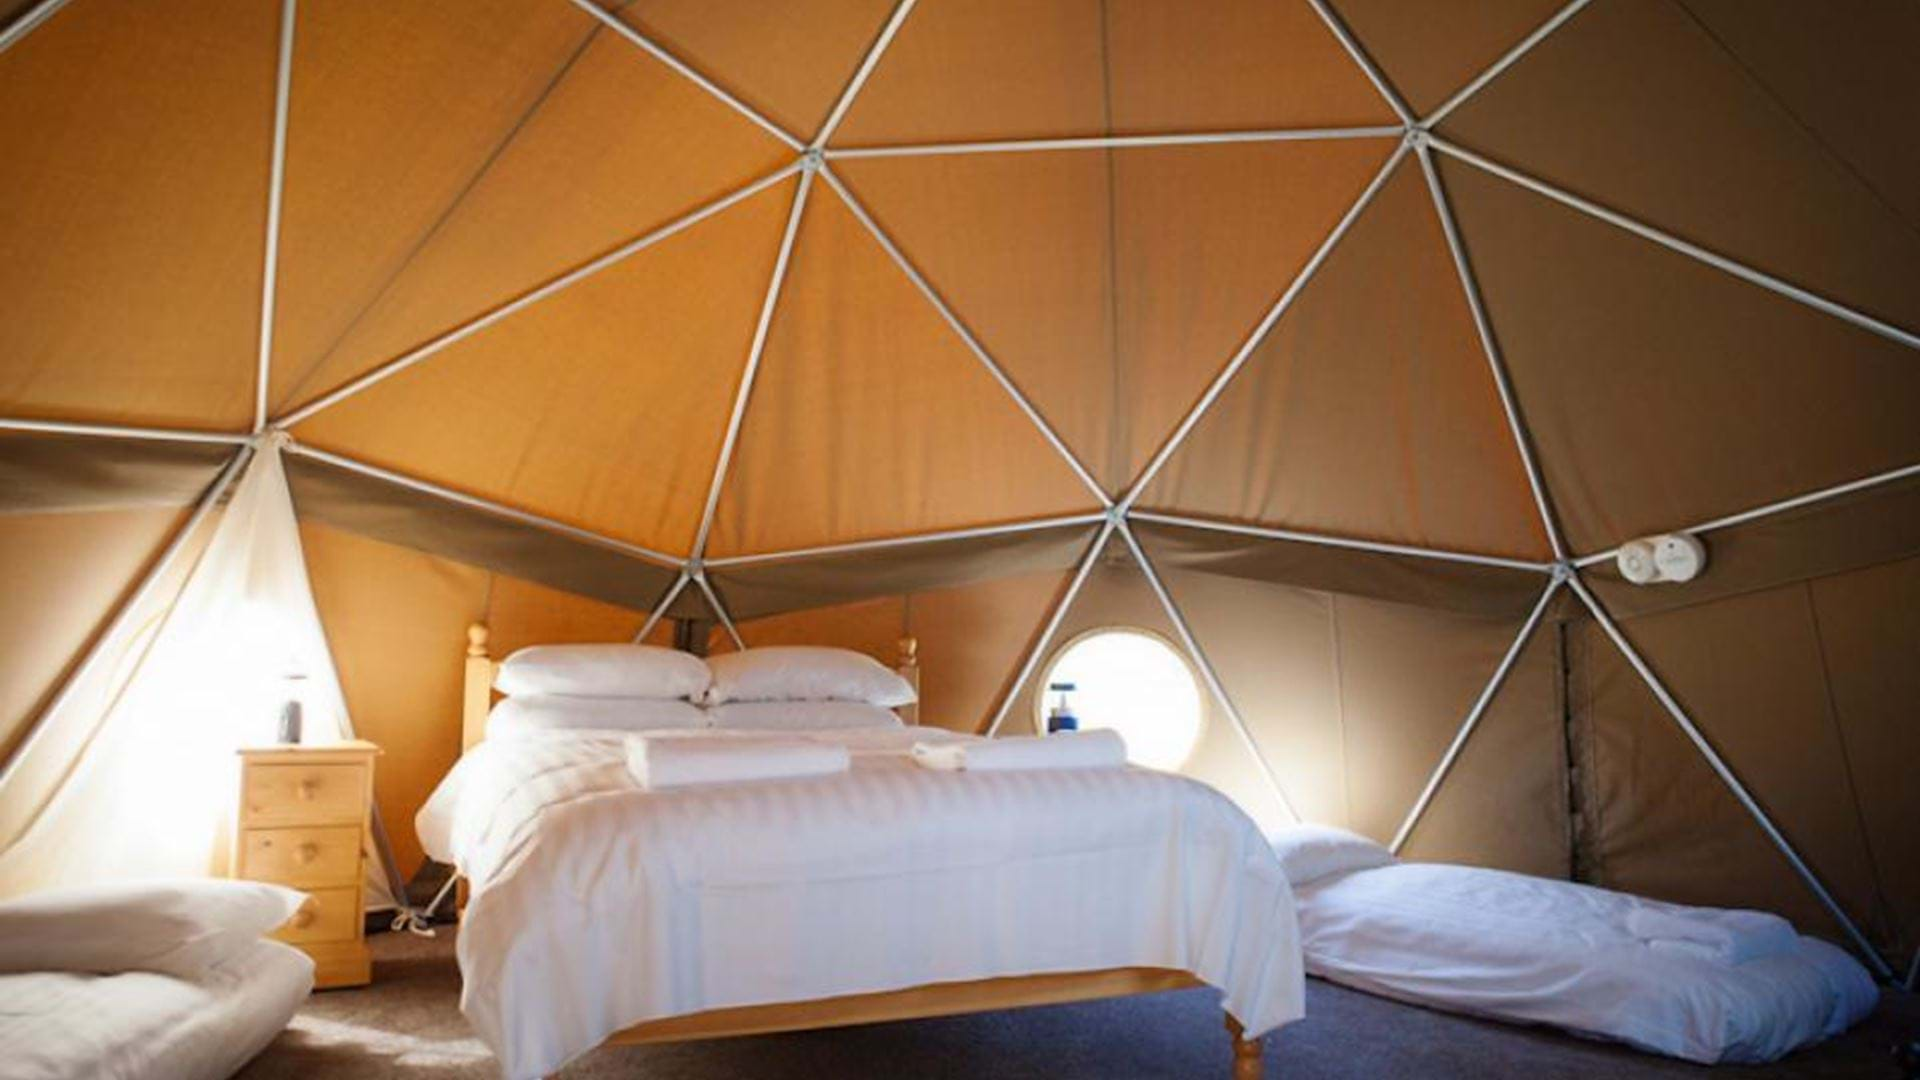 luxury-glamping-durrell-wildlife-camp-jersey-channel-islands